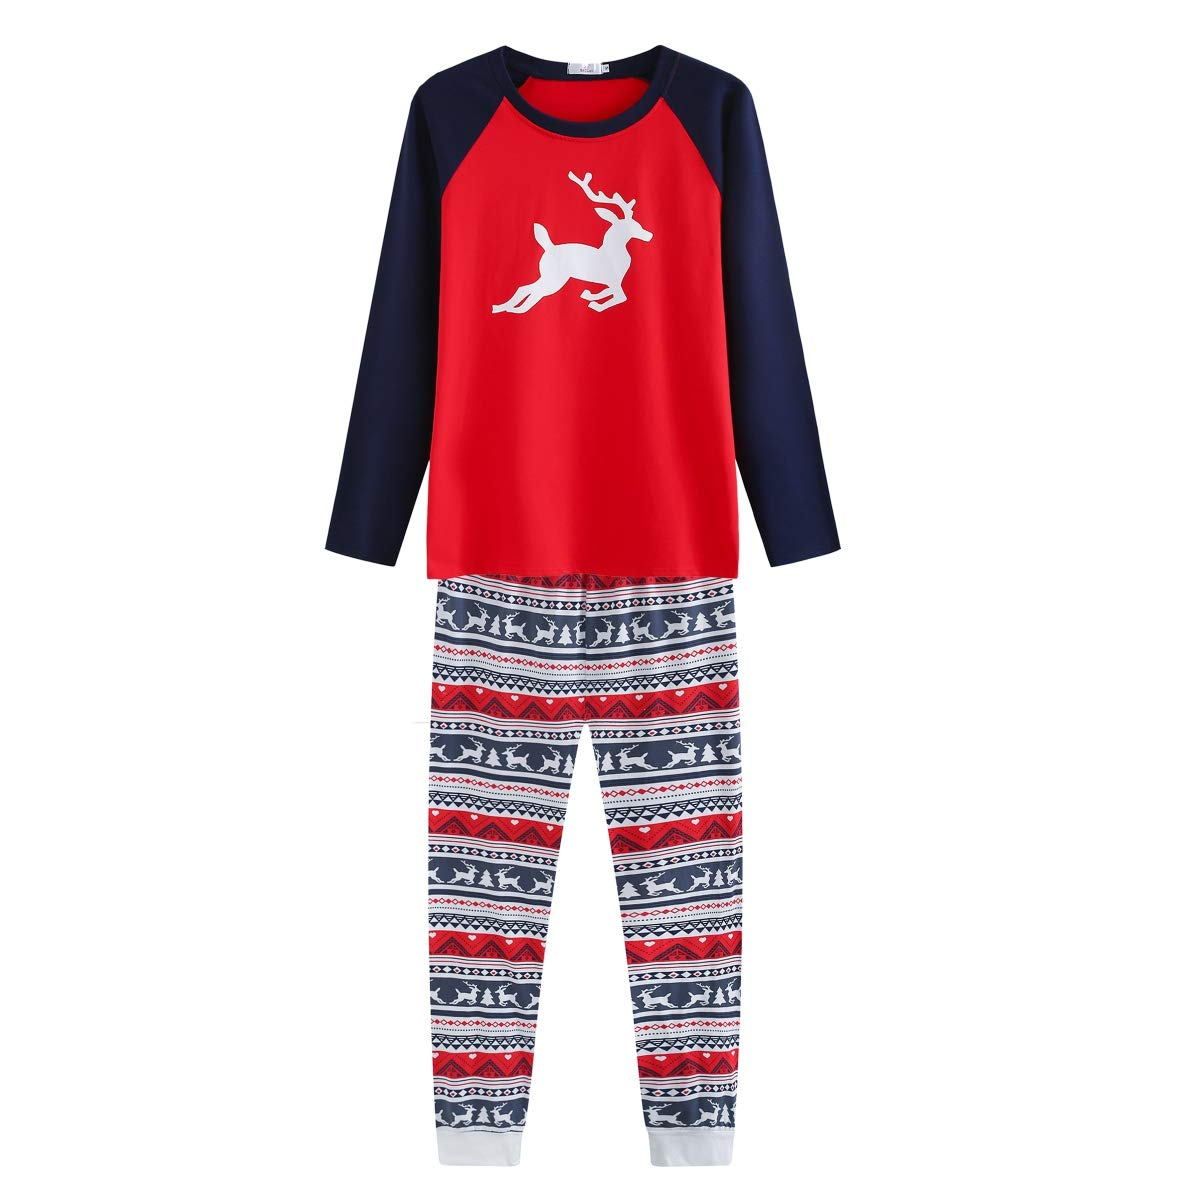 f2611fcb0e EFINNY Family Christmas Pajamas Set Family Matching Nightwear Deer Printed  Loungewear for Father Mother and Kids  Amazon.co.uk  Clothing